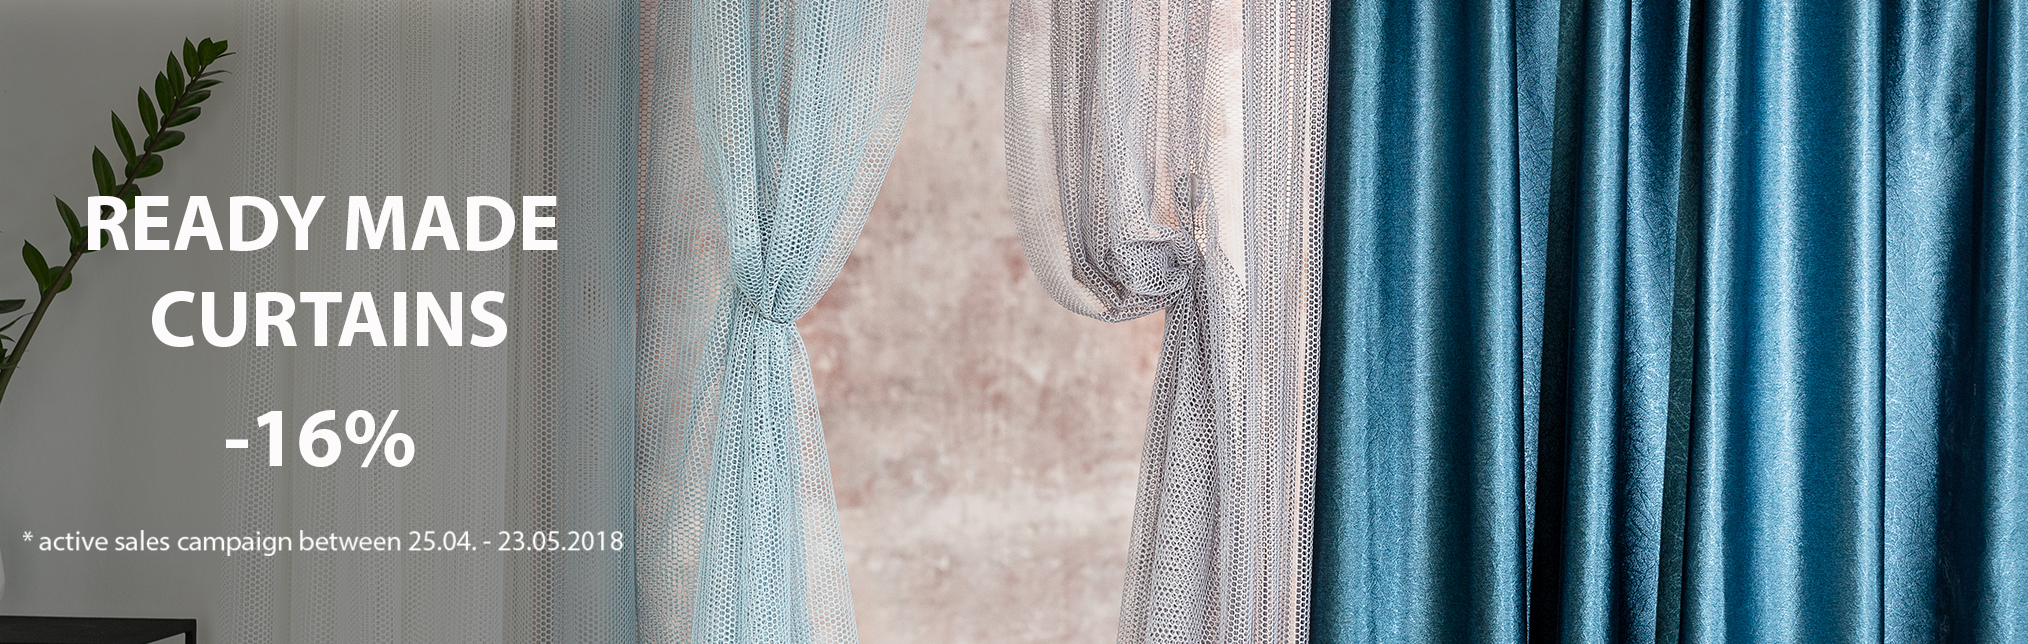 Ready Made Curtains - Promotion May 2018